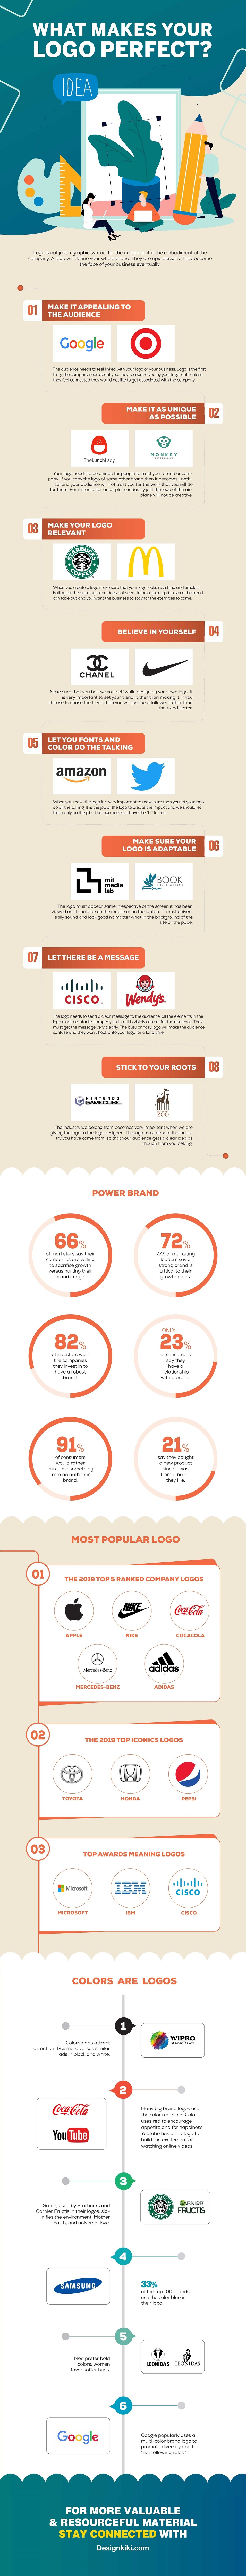 What Makes Your Logo Perfect? #infographic